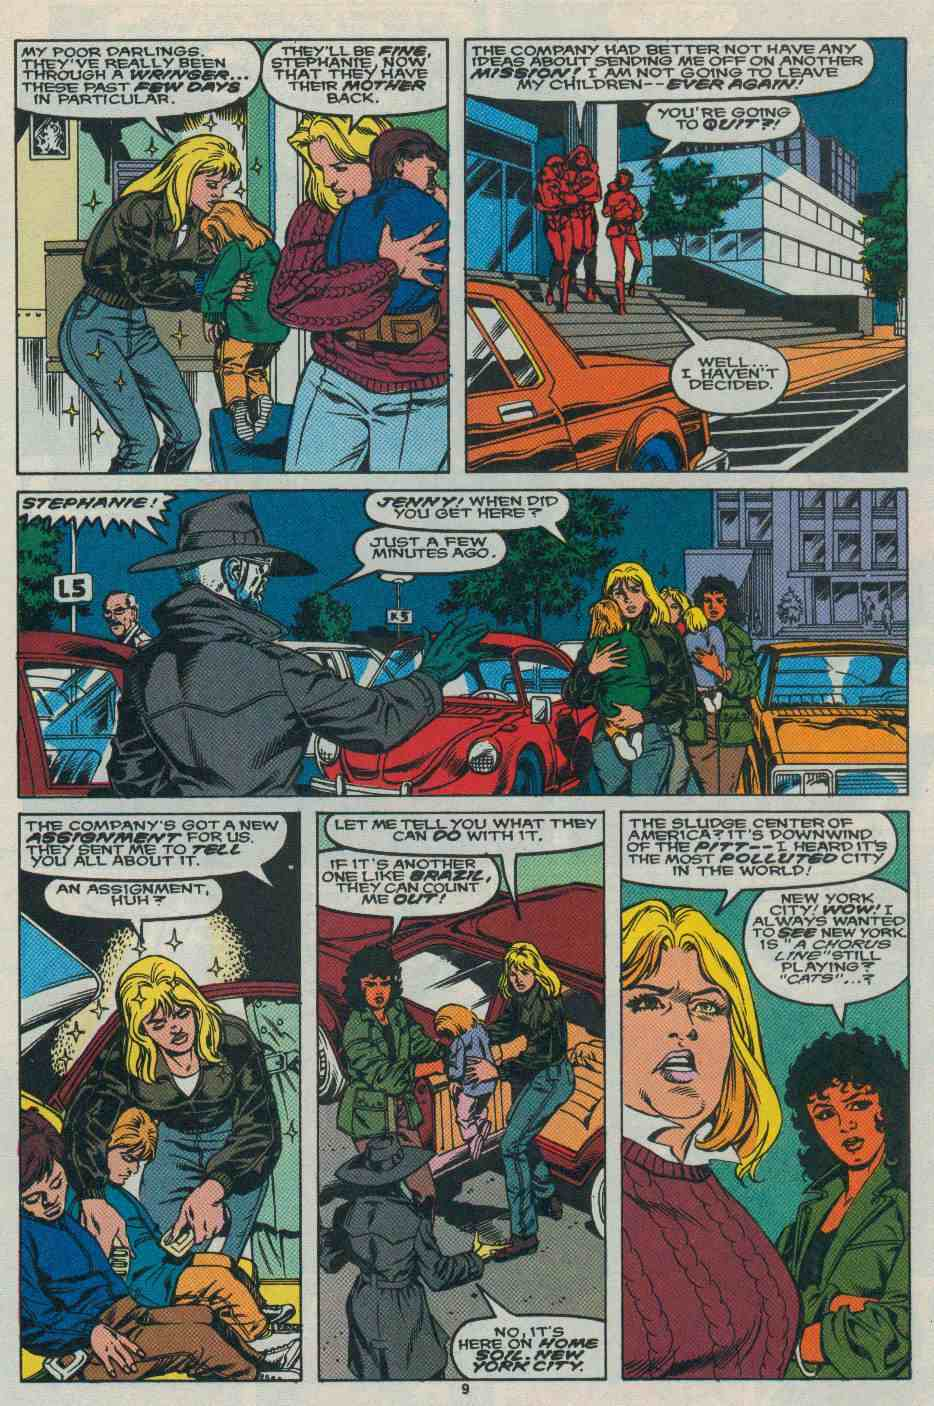 Read online DP7 comic -  Issue #28 - 10